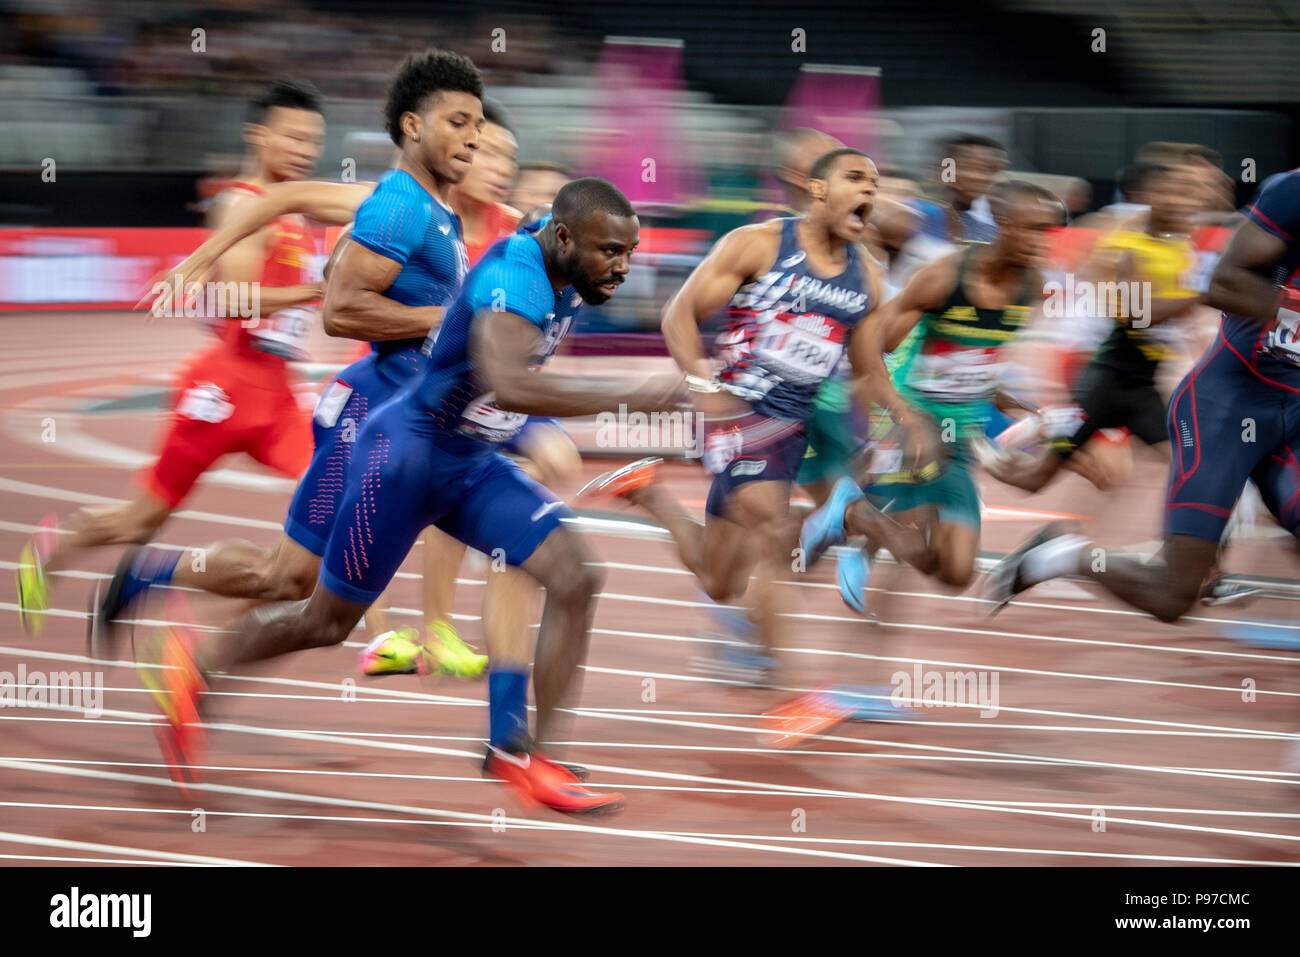 London, UK. 14th July 2018. Male sprinters conduct a baton change in the 4x100m at the Athletics World Cup  at the London Stadium, London, Great Britiain, on 14 July 2018. Credit: Andrew Peat/Alamy Live News - Stock Image